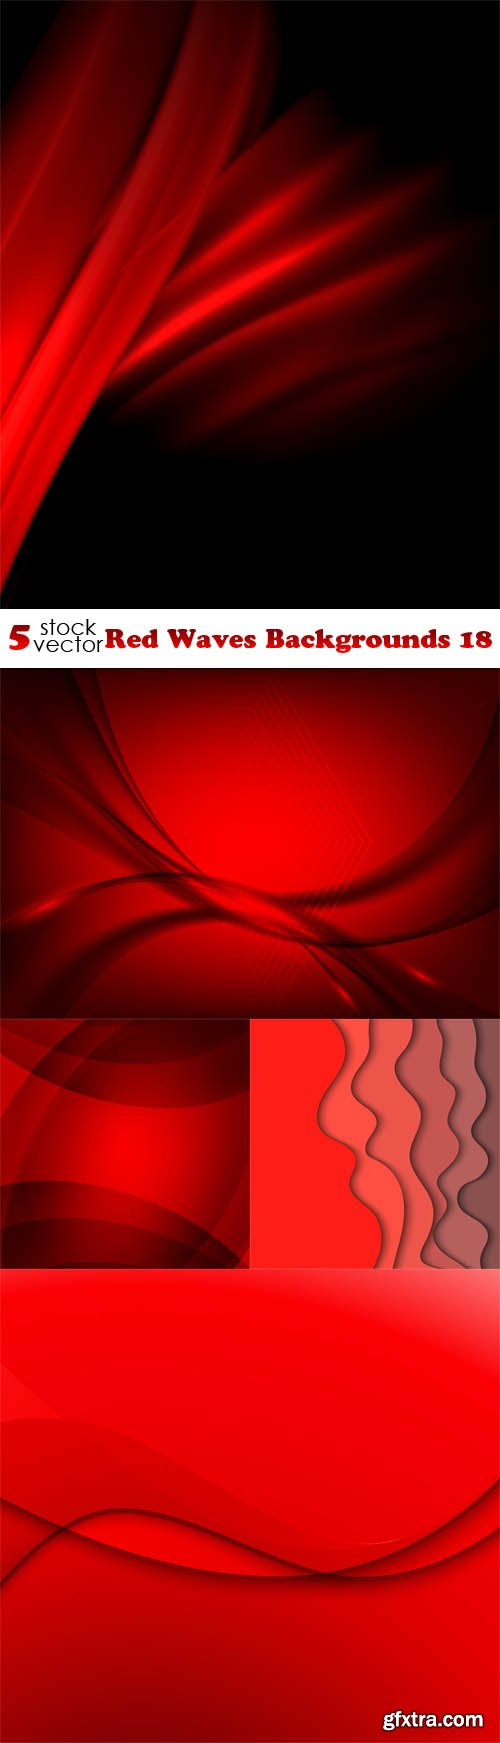 Vectors - Red Waves Backgrounds 18